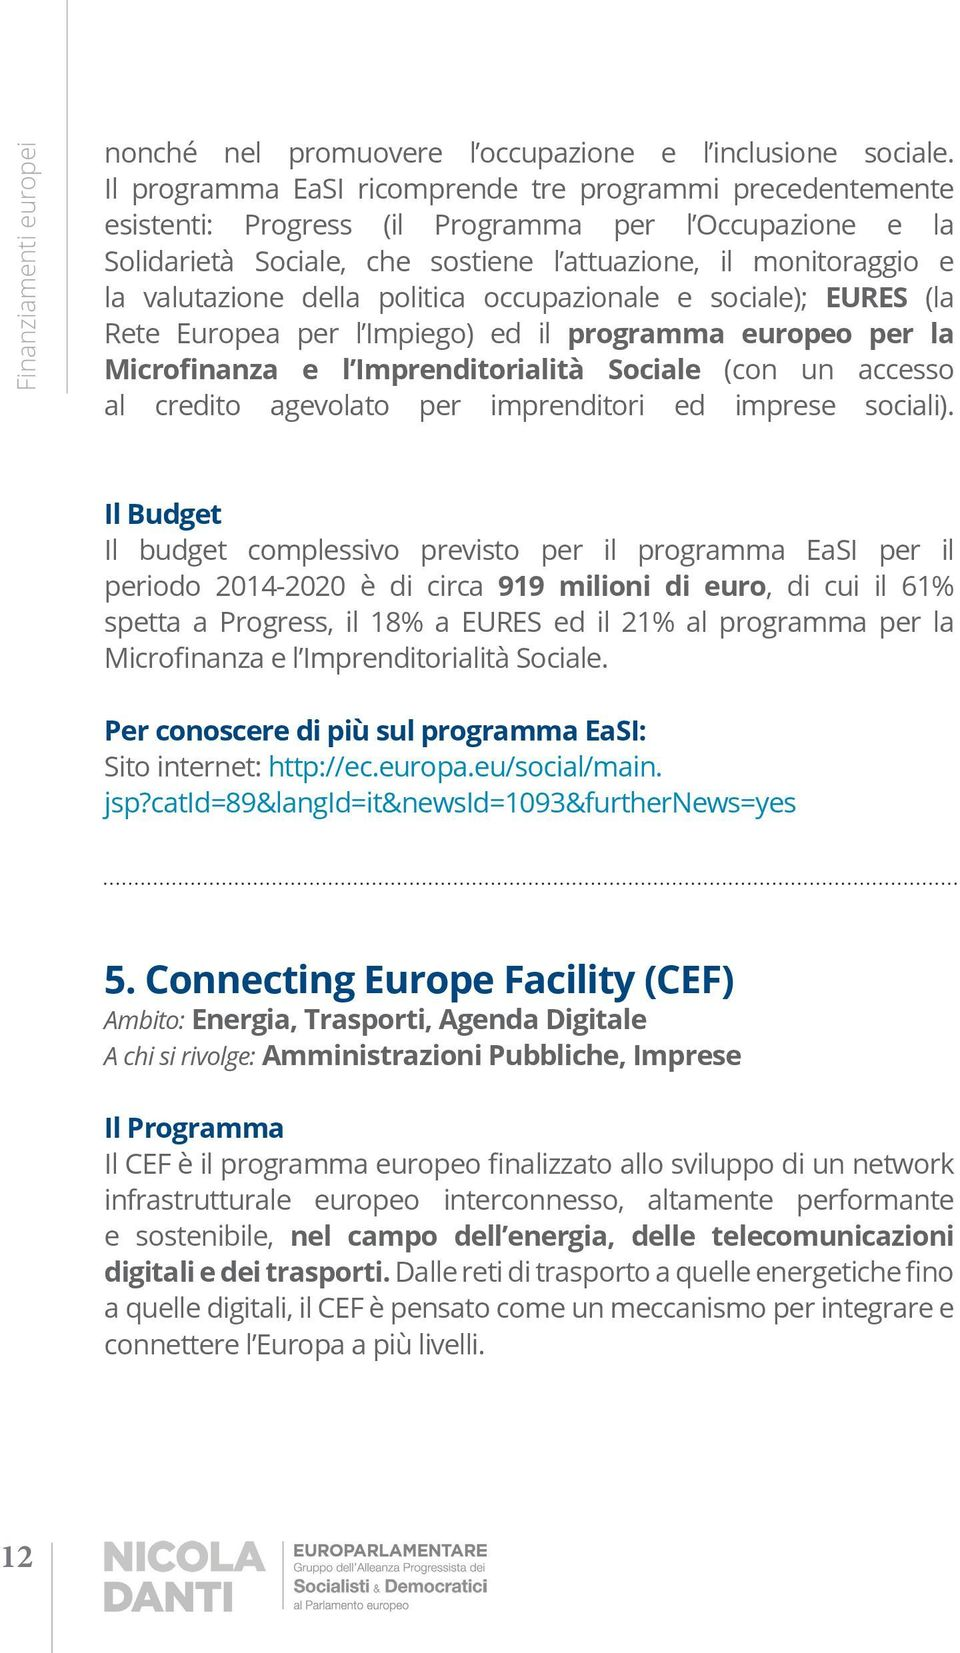 Connecting Europe Facility (CEF) Ambito: Energia, Trasporti, Agenda Digitale A chi si rivolge: